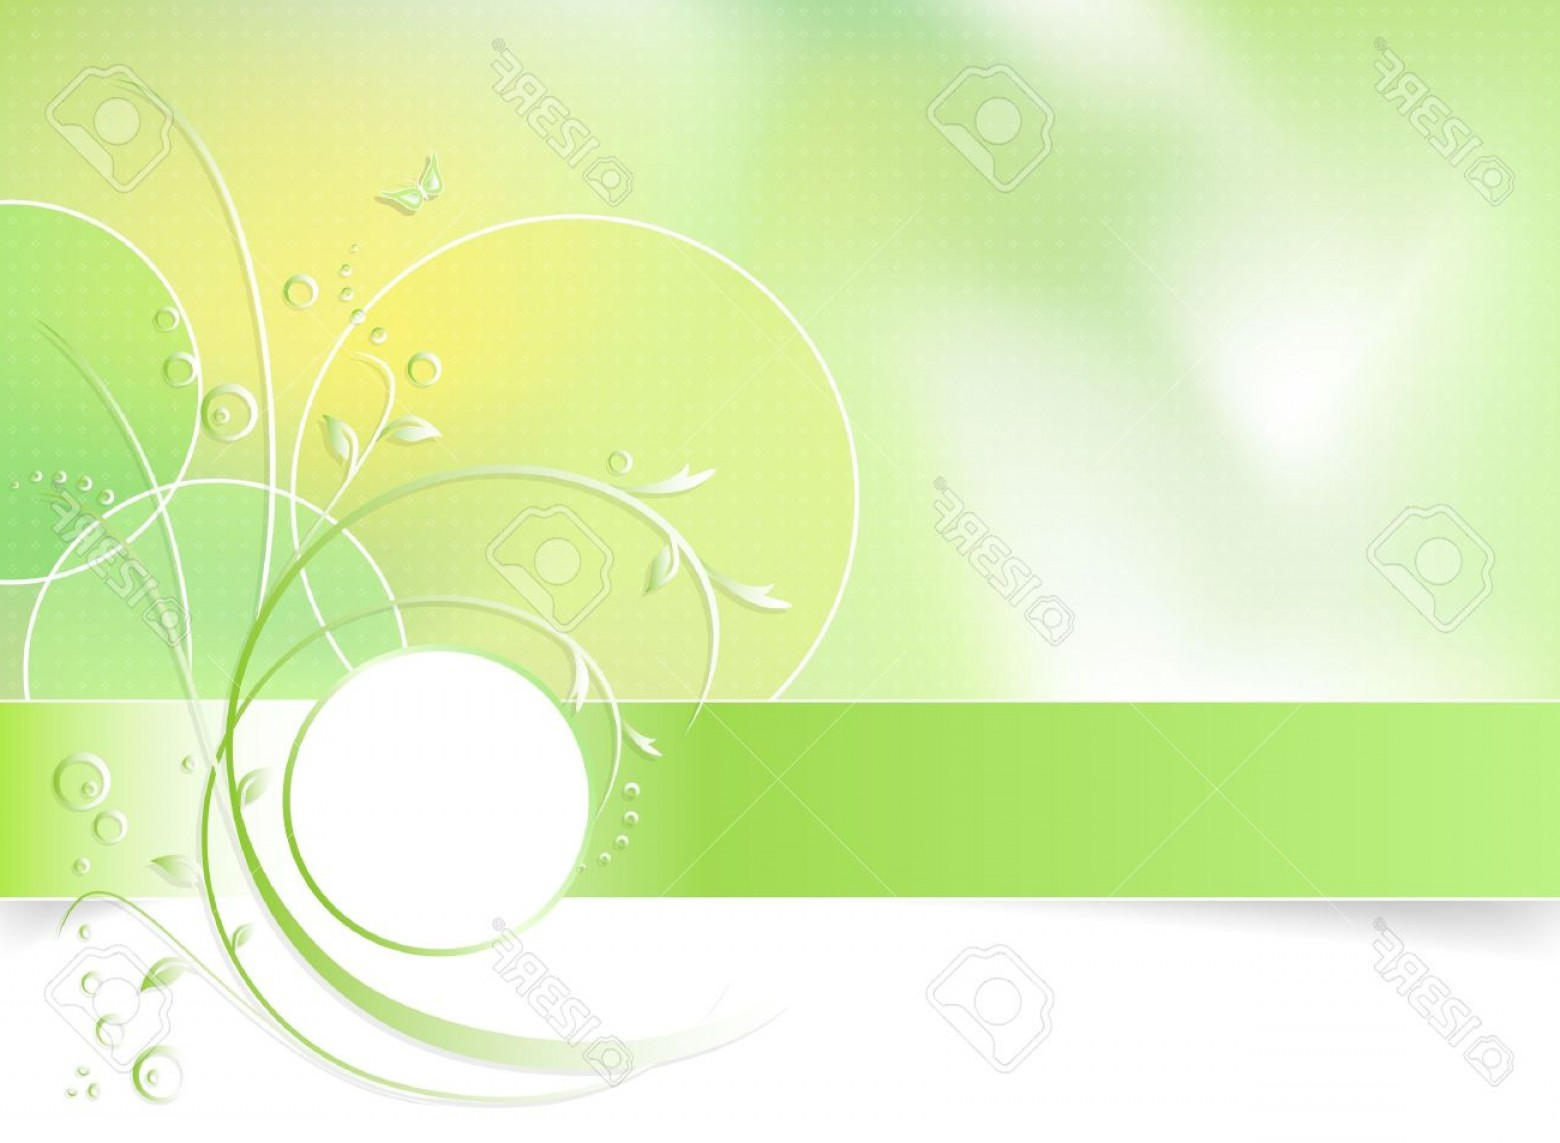 Green And White Vector: Photogreen Spring Flower Background Greeting Card Abstract Floral Design In White Green And Light Yellow